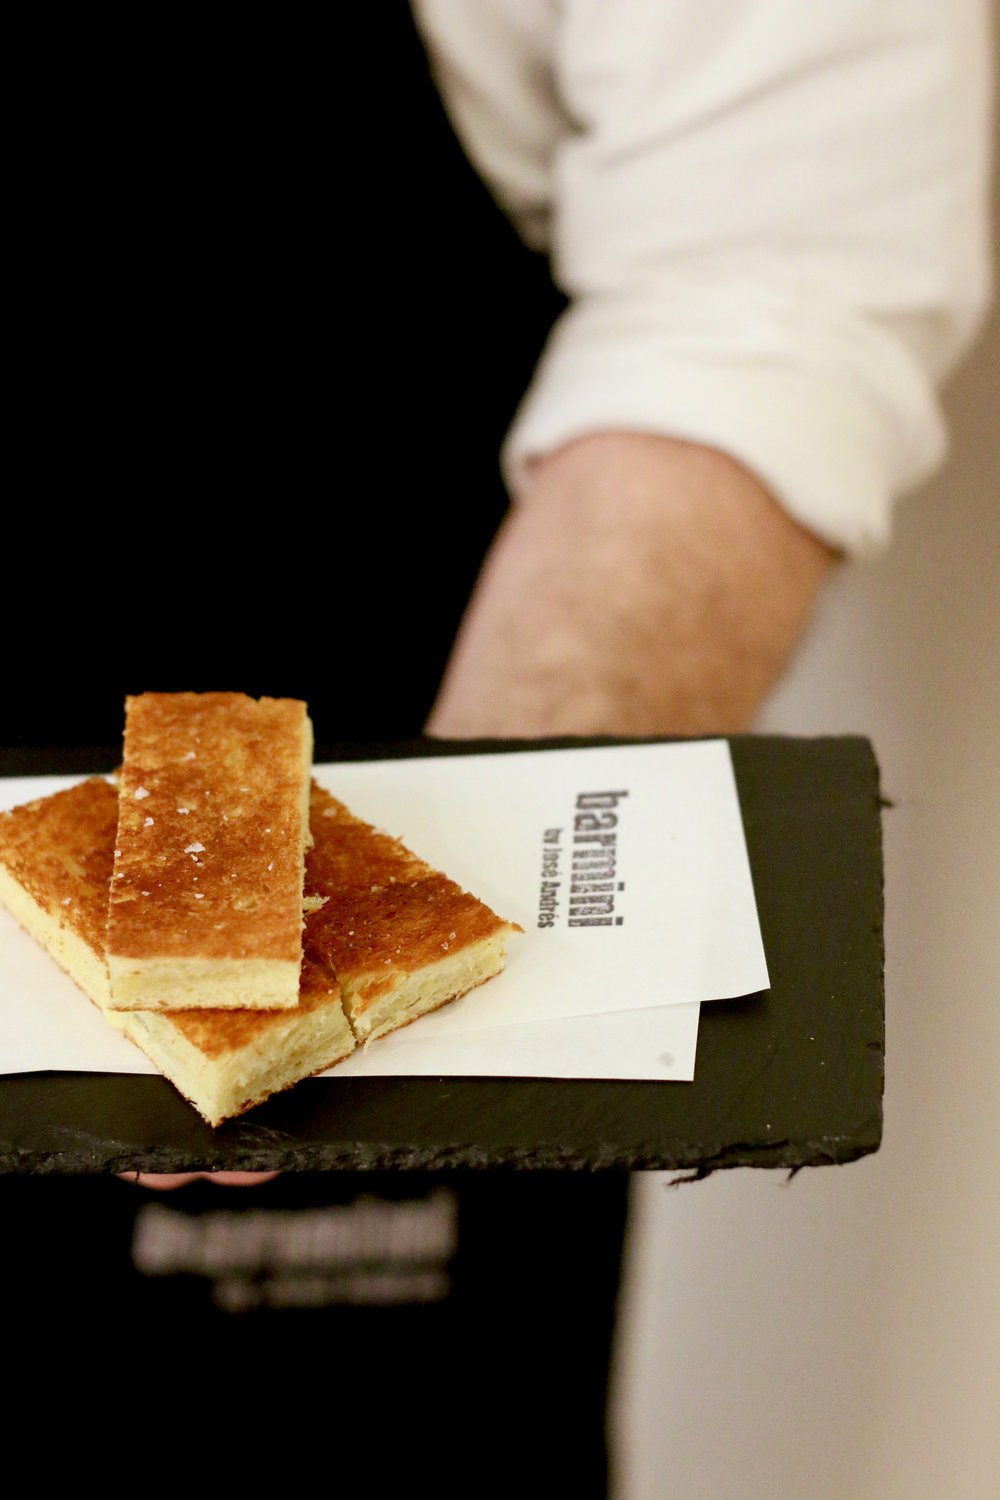 Delicious bites from minibar can be ordered like these grilled cheese sandwiches with truffle, cheddar, and caramelized onions.